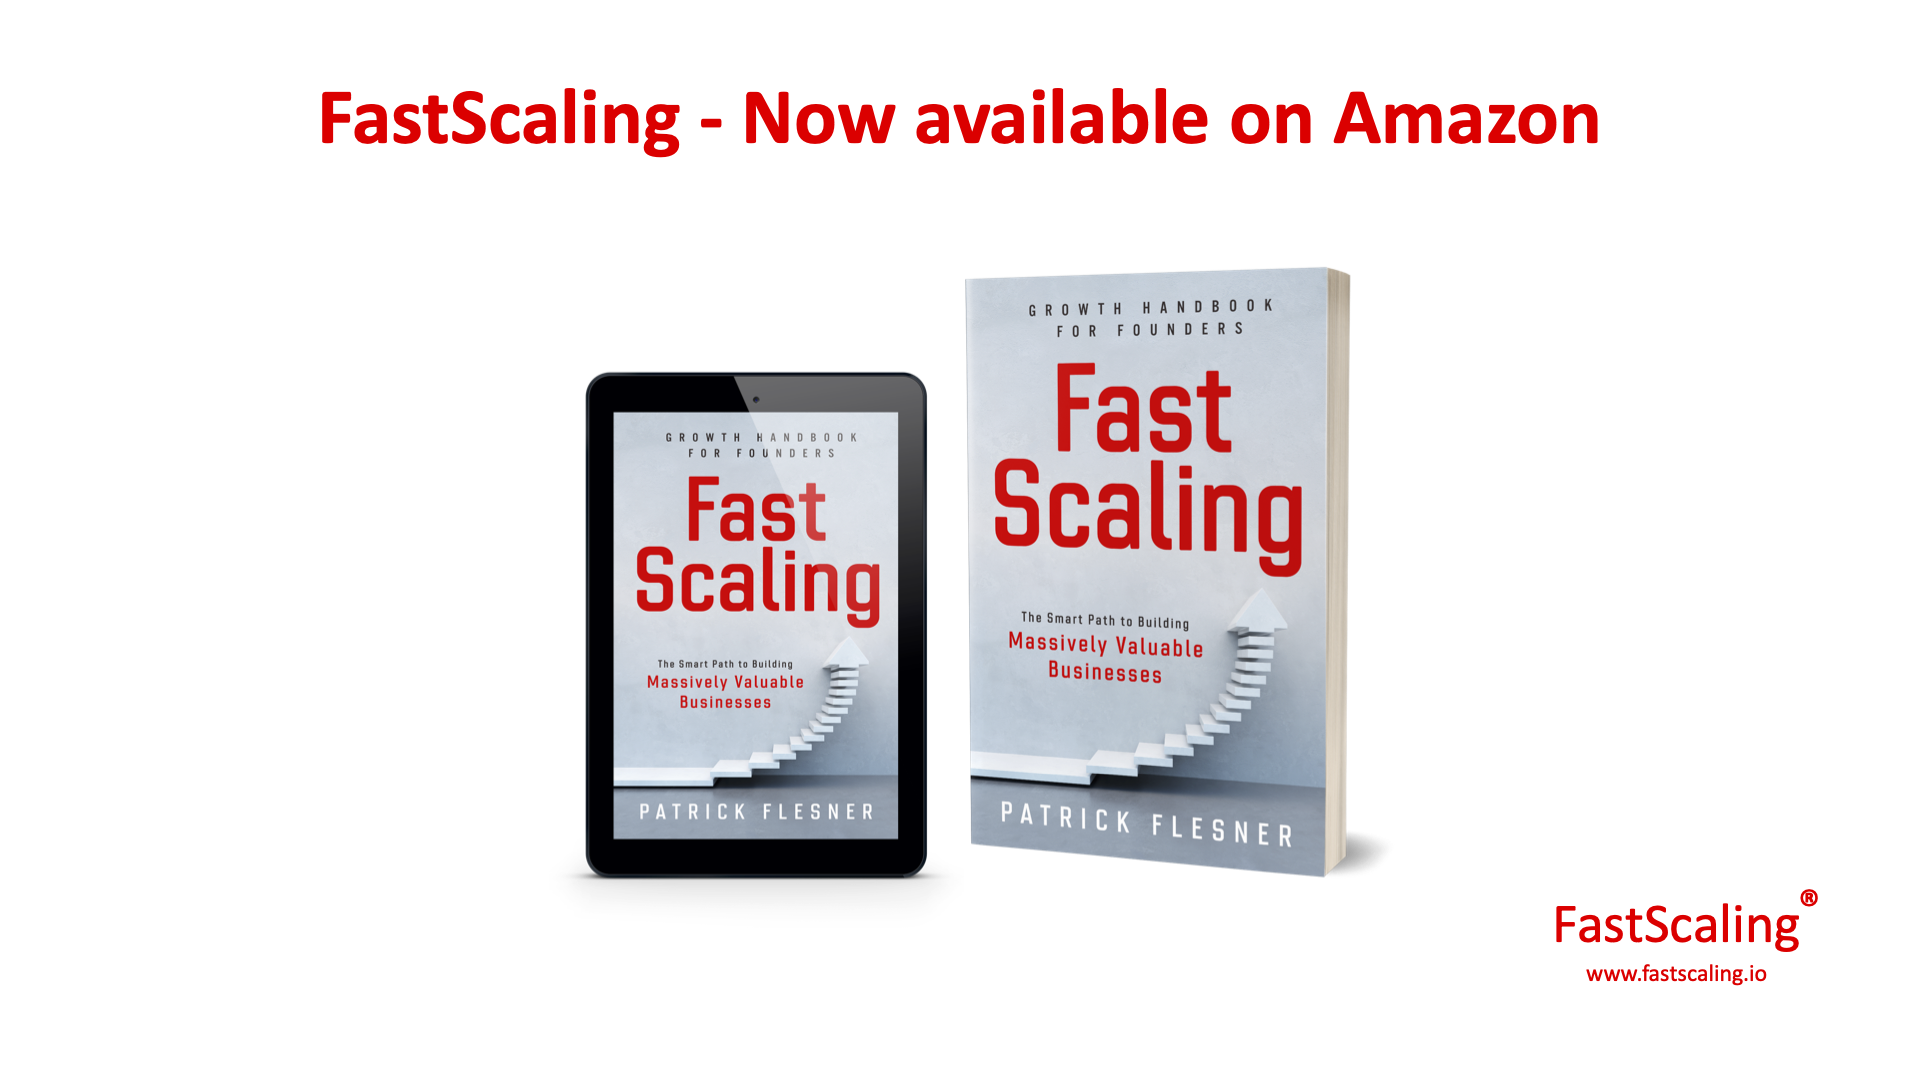 FastScaling - Published